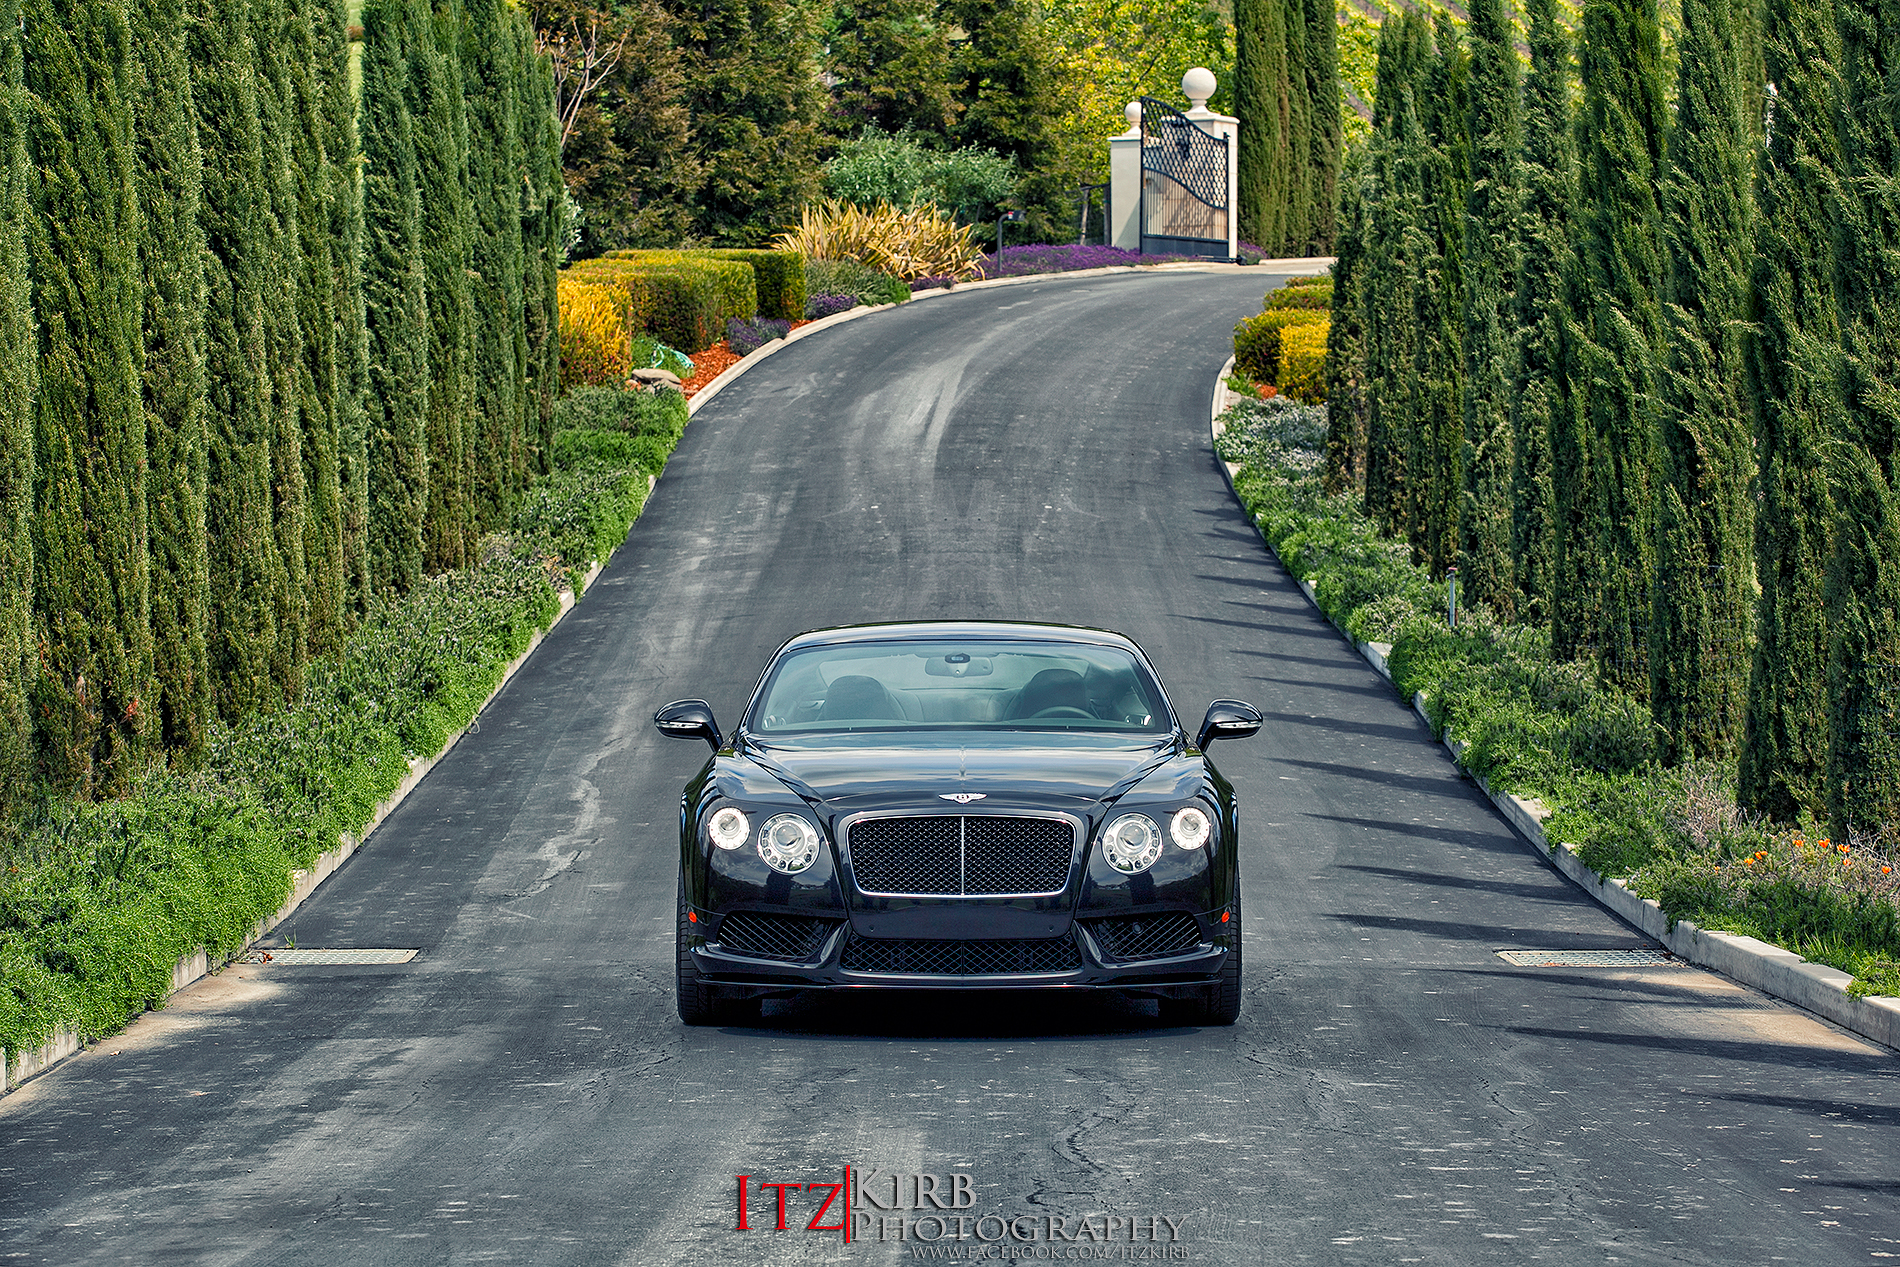 The launch car further down the driveway.Photo by ITZKirb Photography